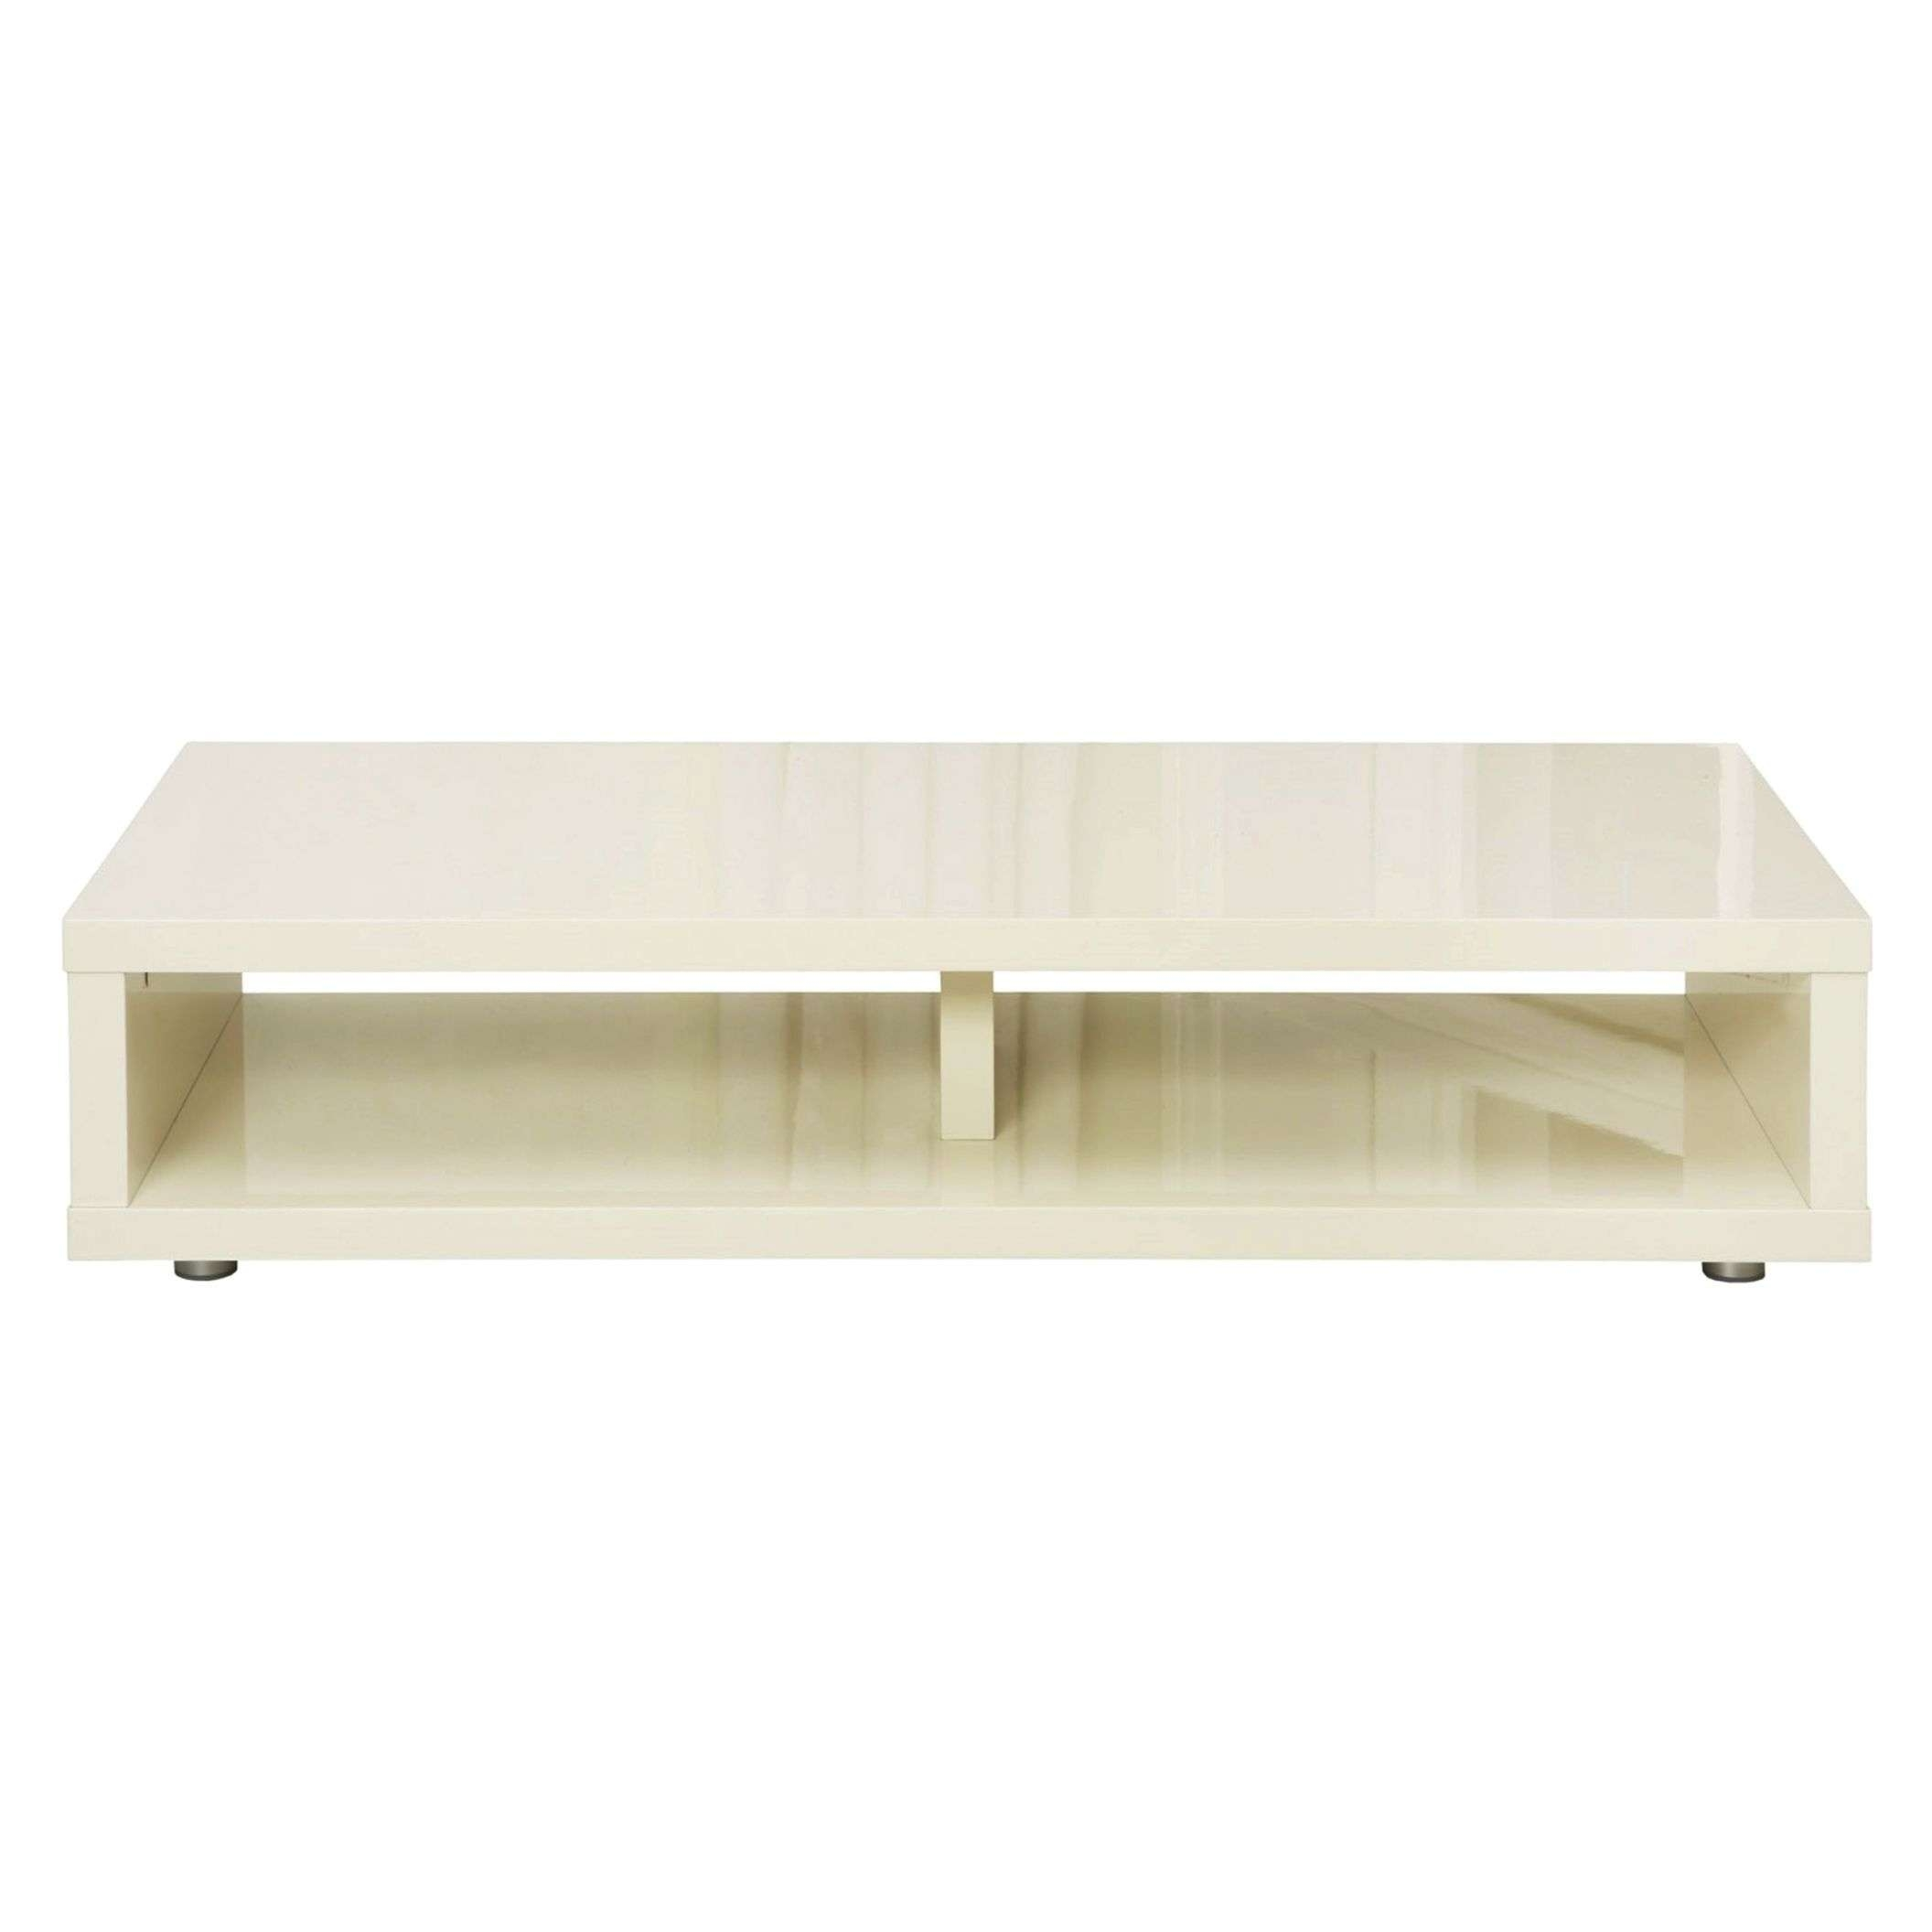 Puro Cream Tv Cabinet | Contemporary Furniture Collection Inside Cream Tv Cabinets (View 10 of 20)